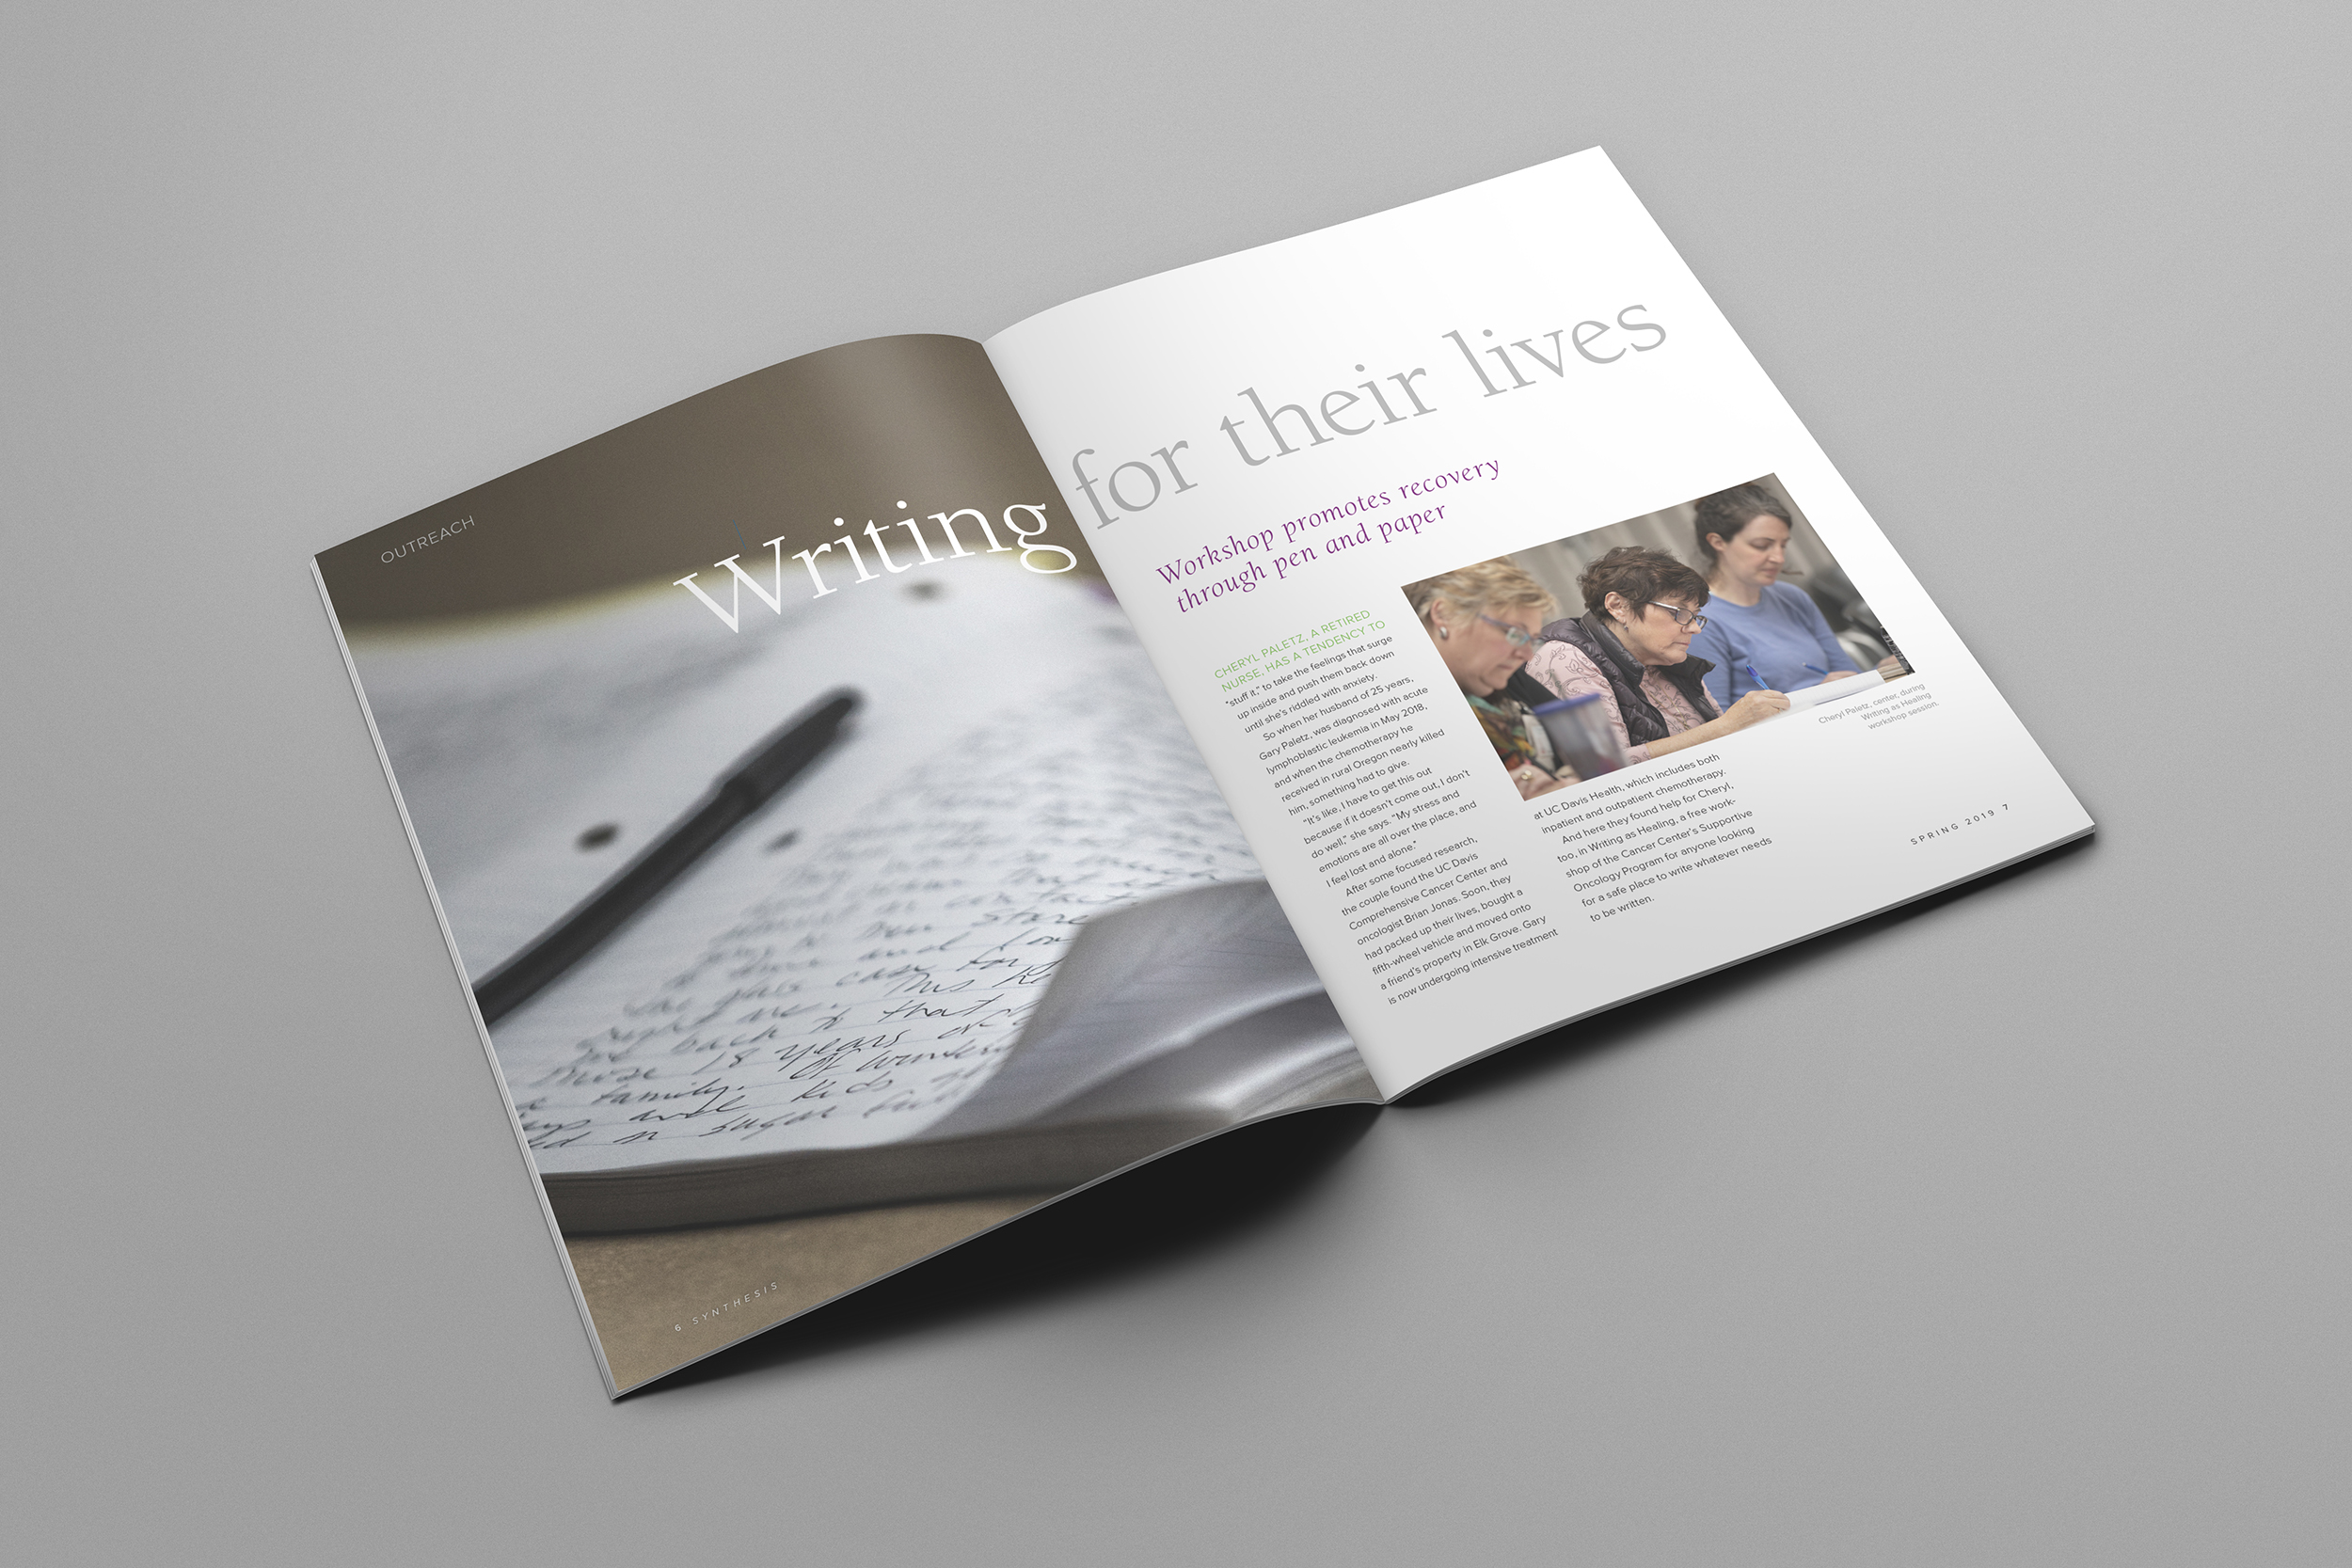 Synth_spread1magazine_mockup_perspective.jpg